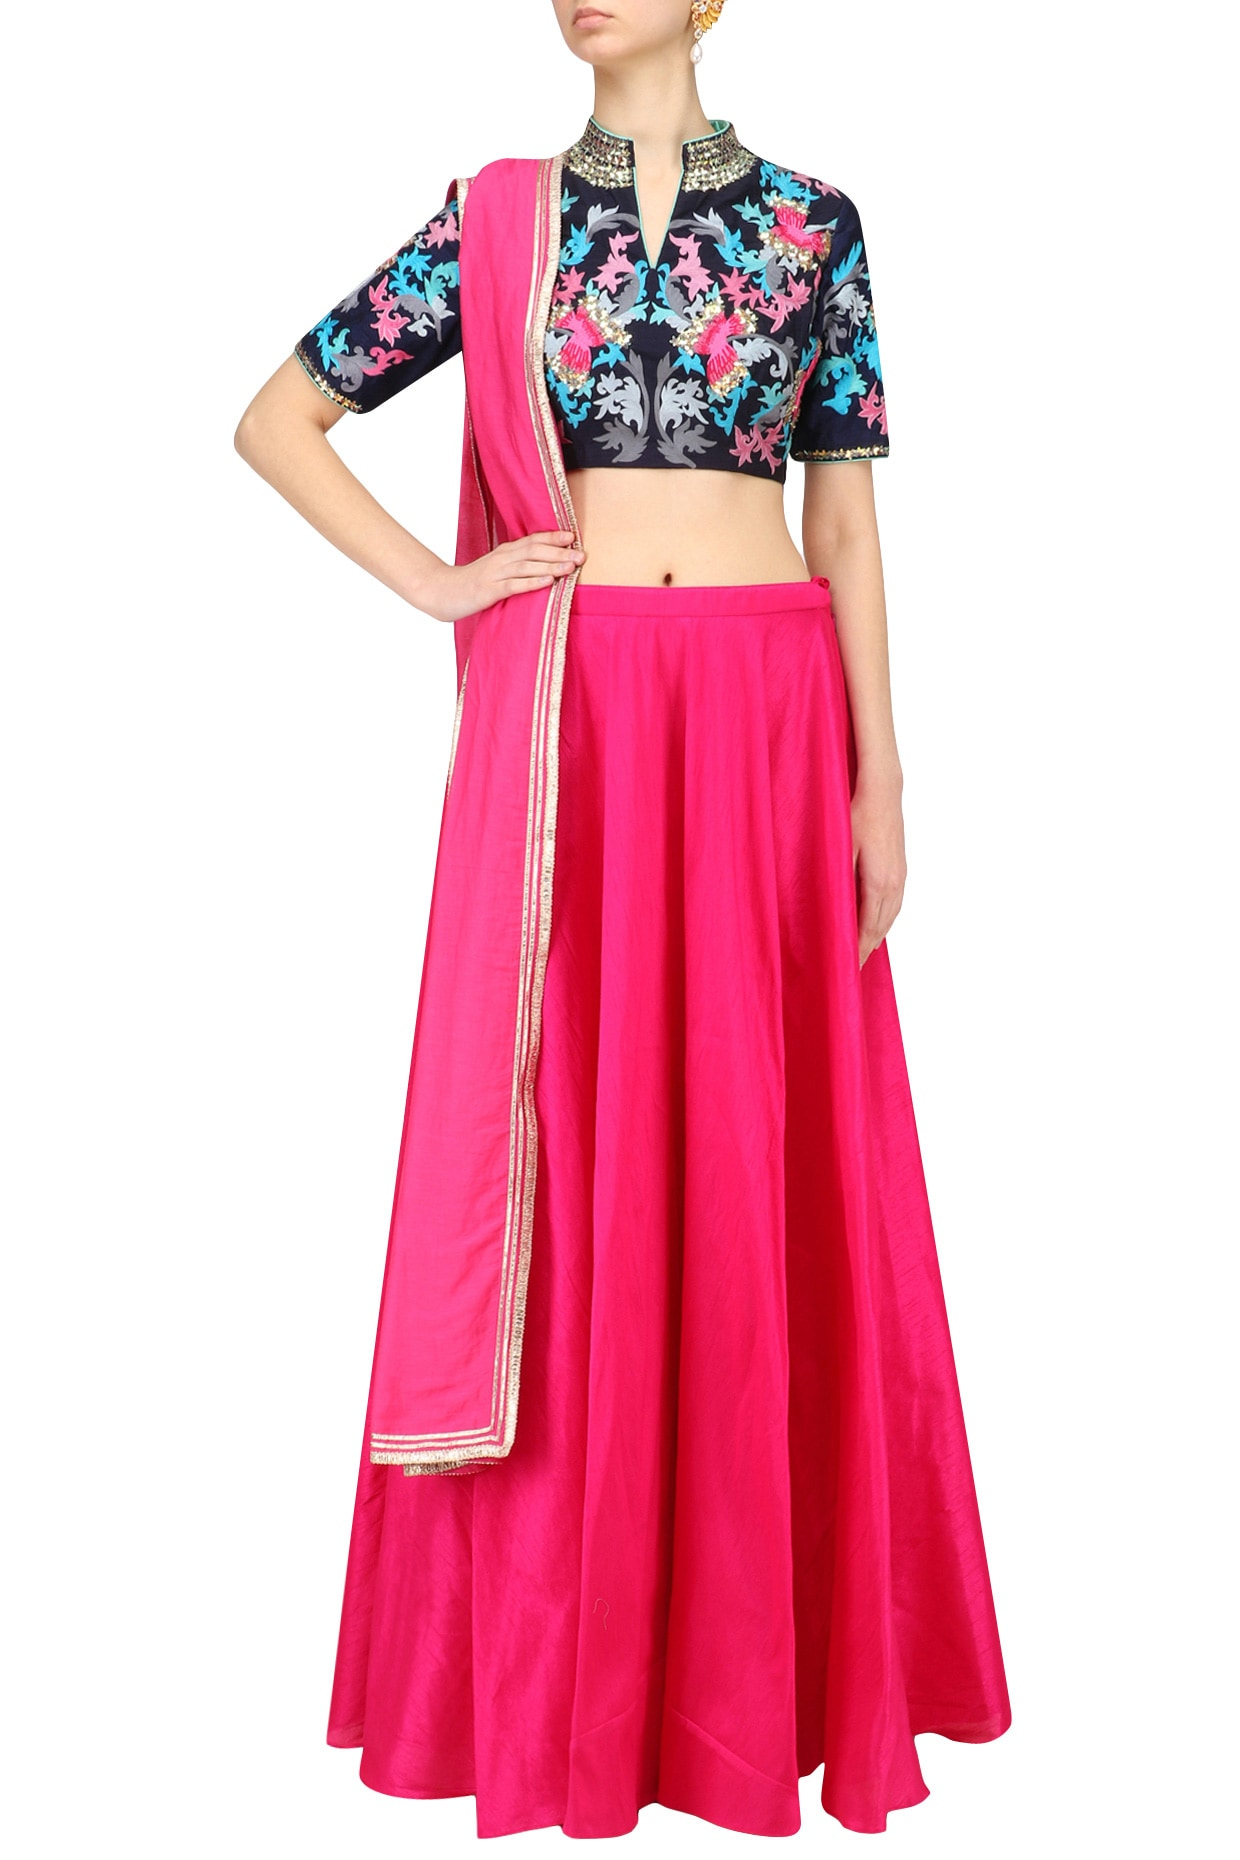 7742c93b353c Navy blue blouse and pink skirt set available only at Pernia's Pop ...